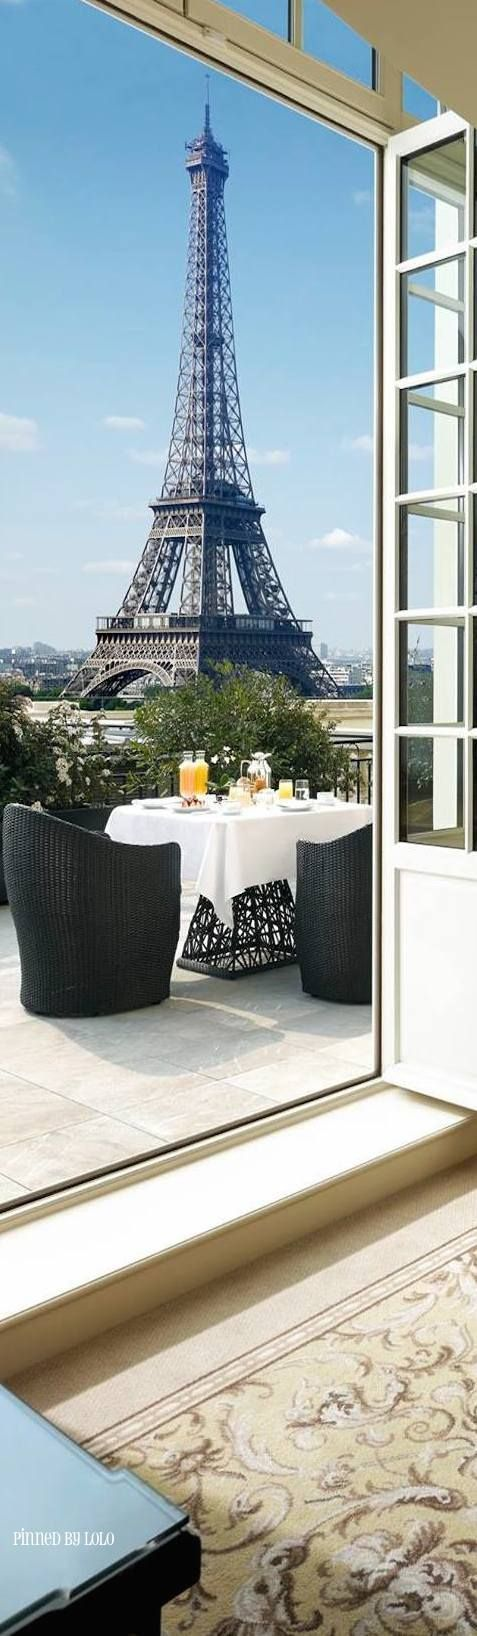 Shangri-La - what better hotel to choose than the one with a beautiful Eiffel…